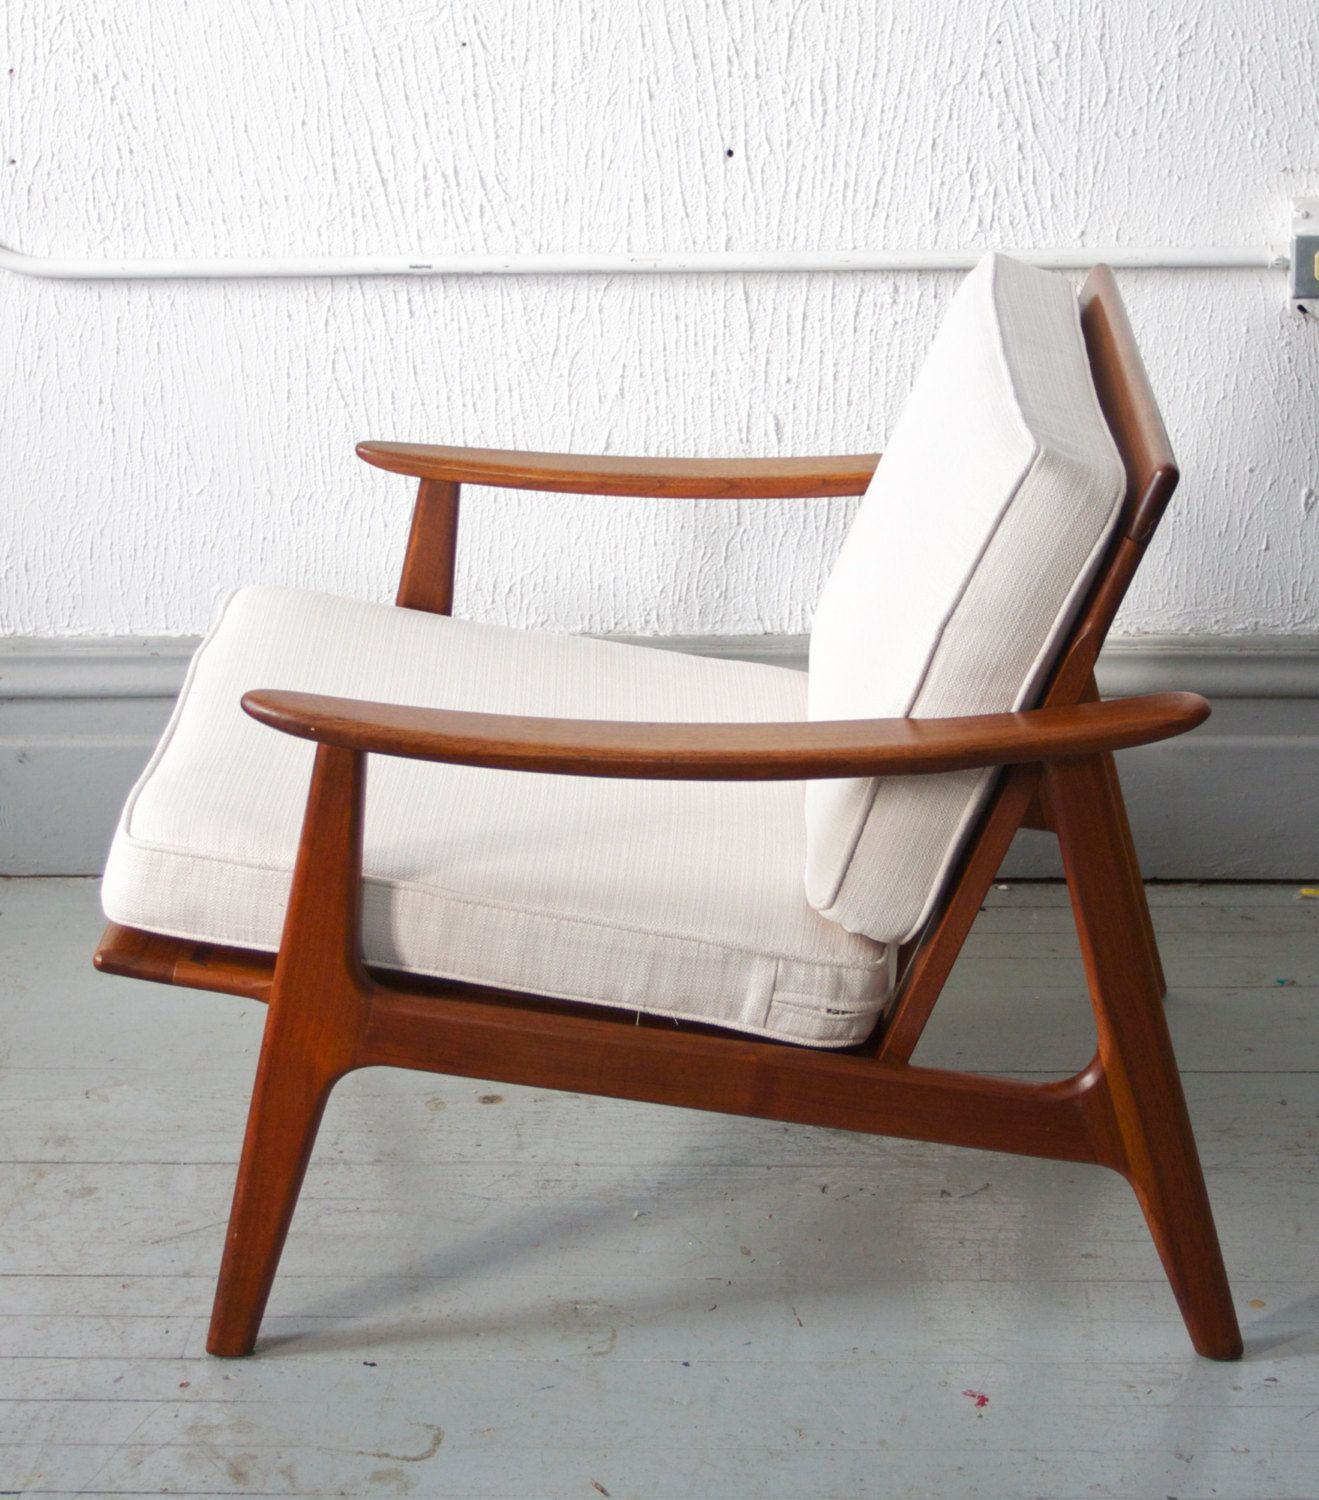 Mid Century Modern Danish Style Lounge Chair   50s   60s Mad Men. $495.00,  Via Etsy.